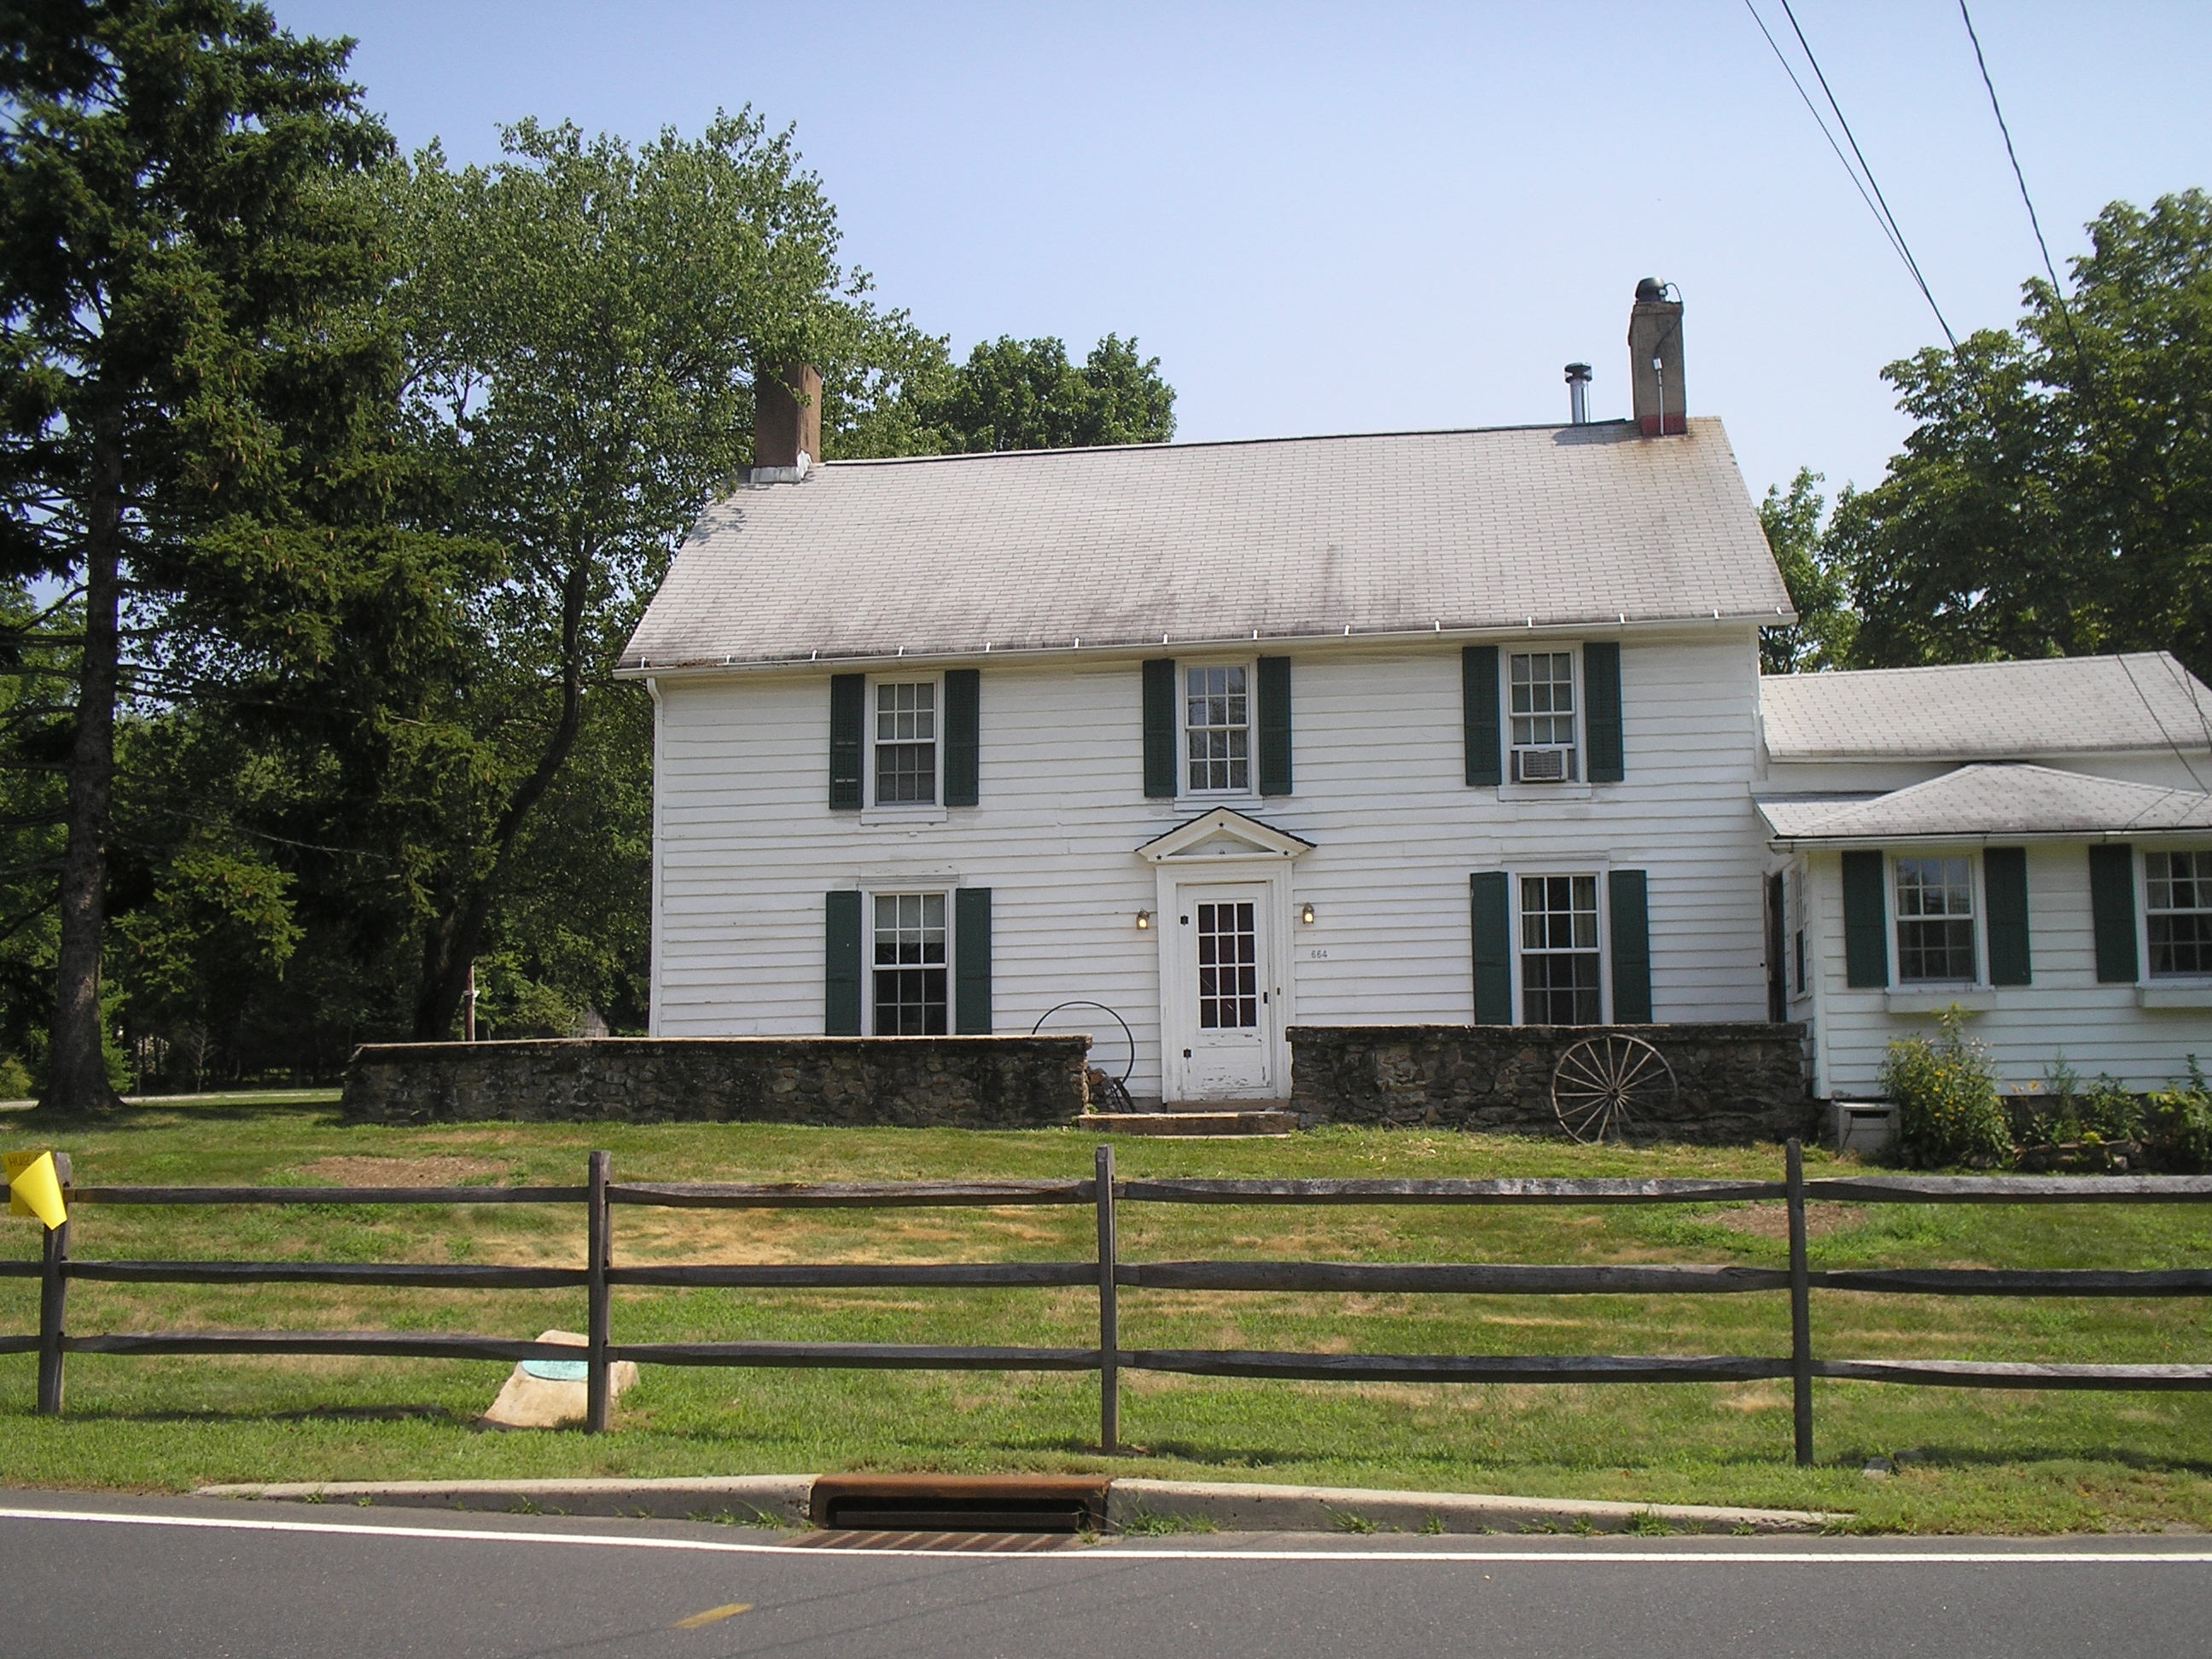 Jacob Vosseller House and General Store circa 1753